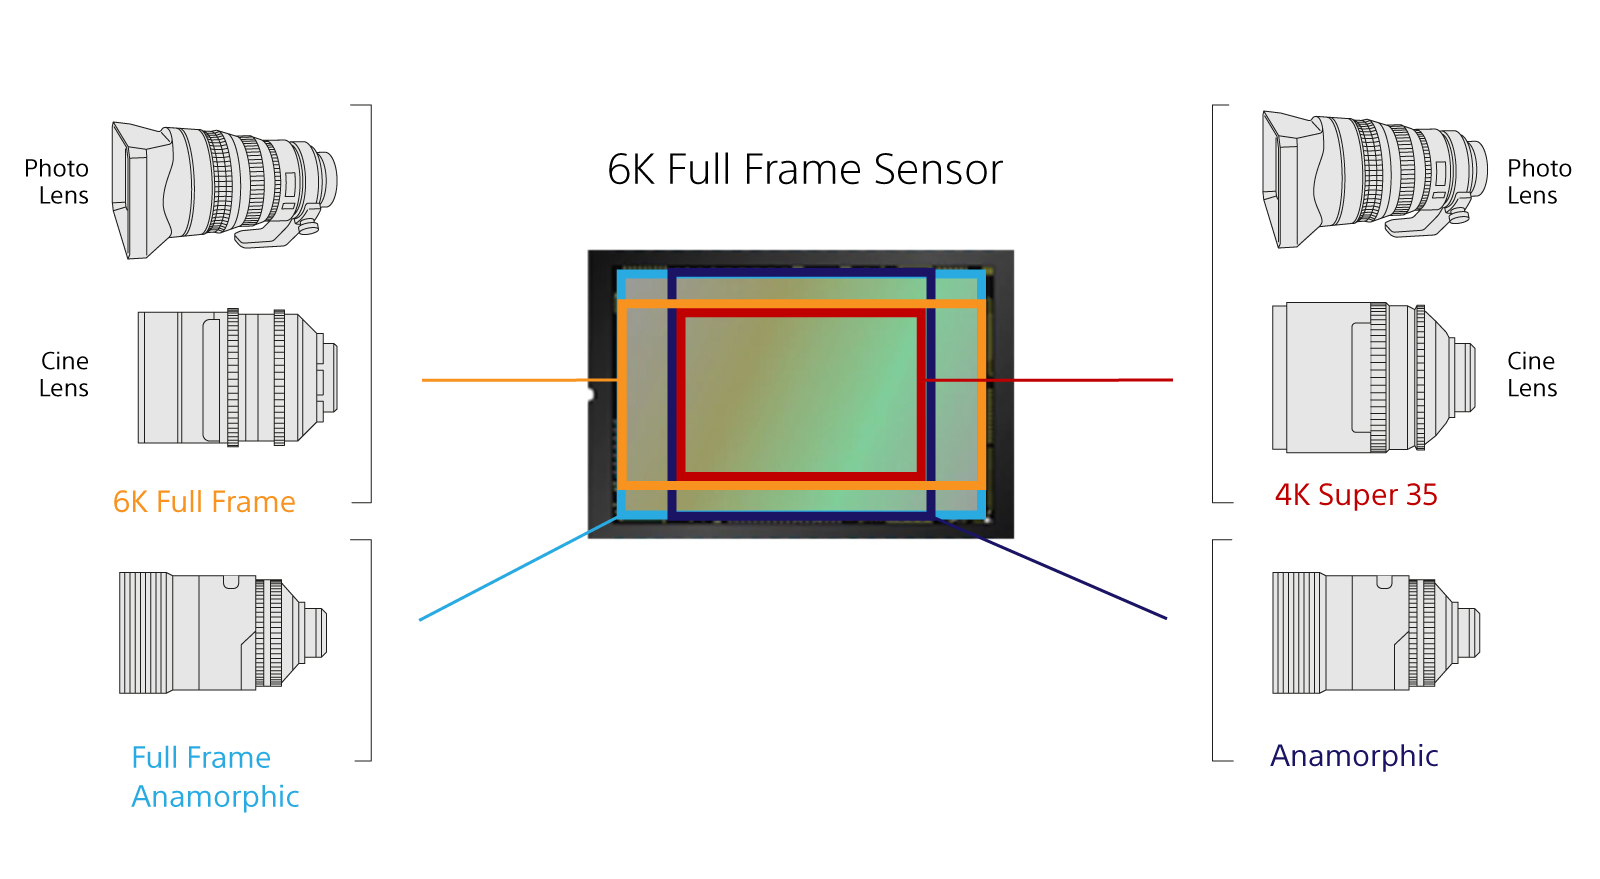 Diagram showing a 6K full-frame sensor and compatibility with full-frame and Super 35 lenses.